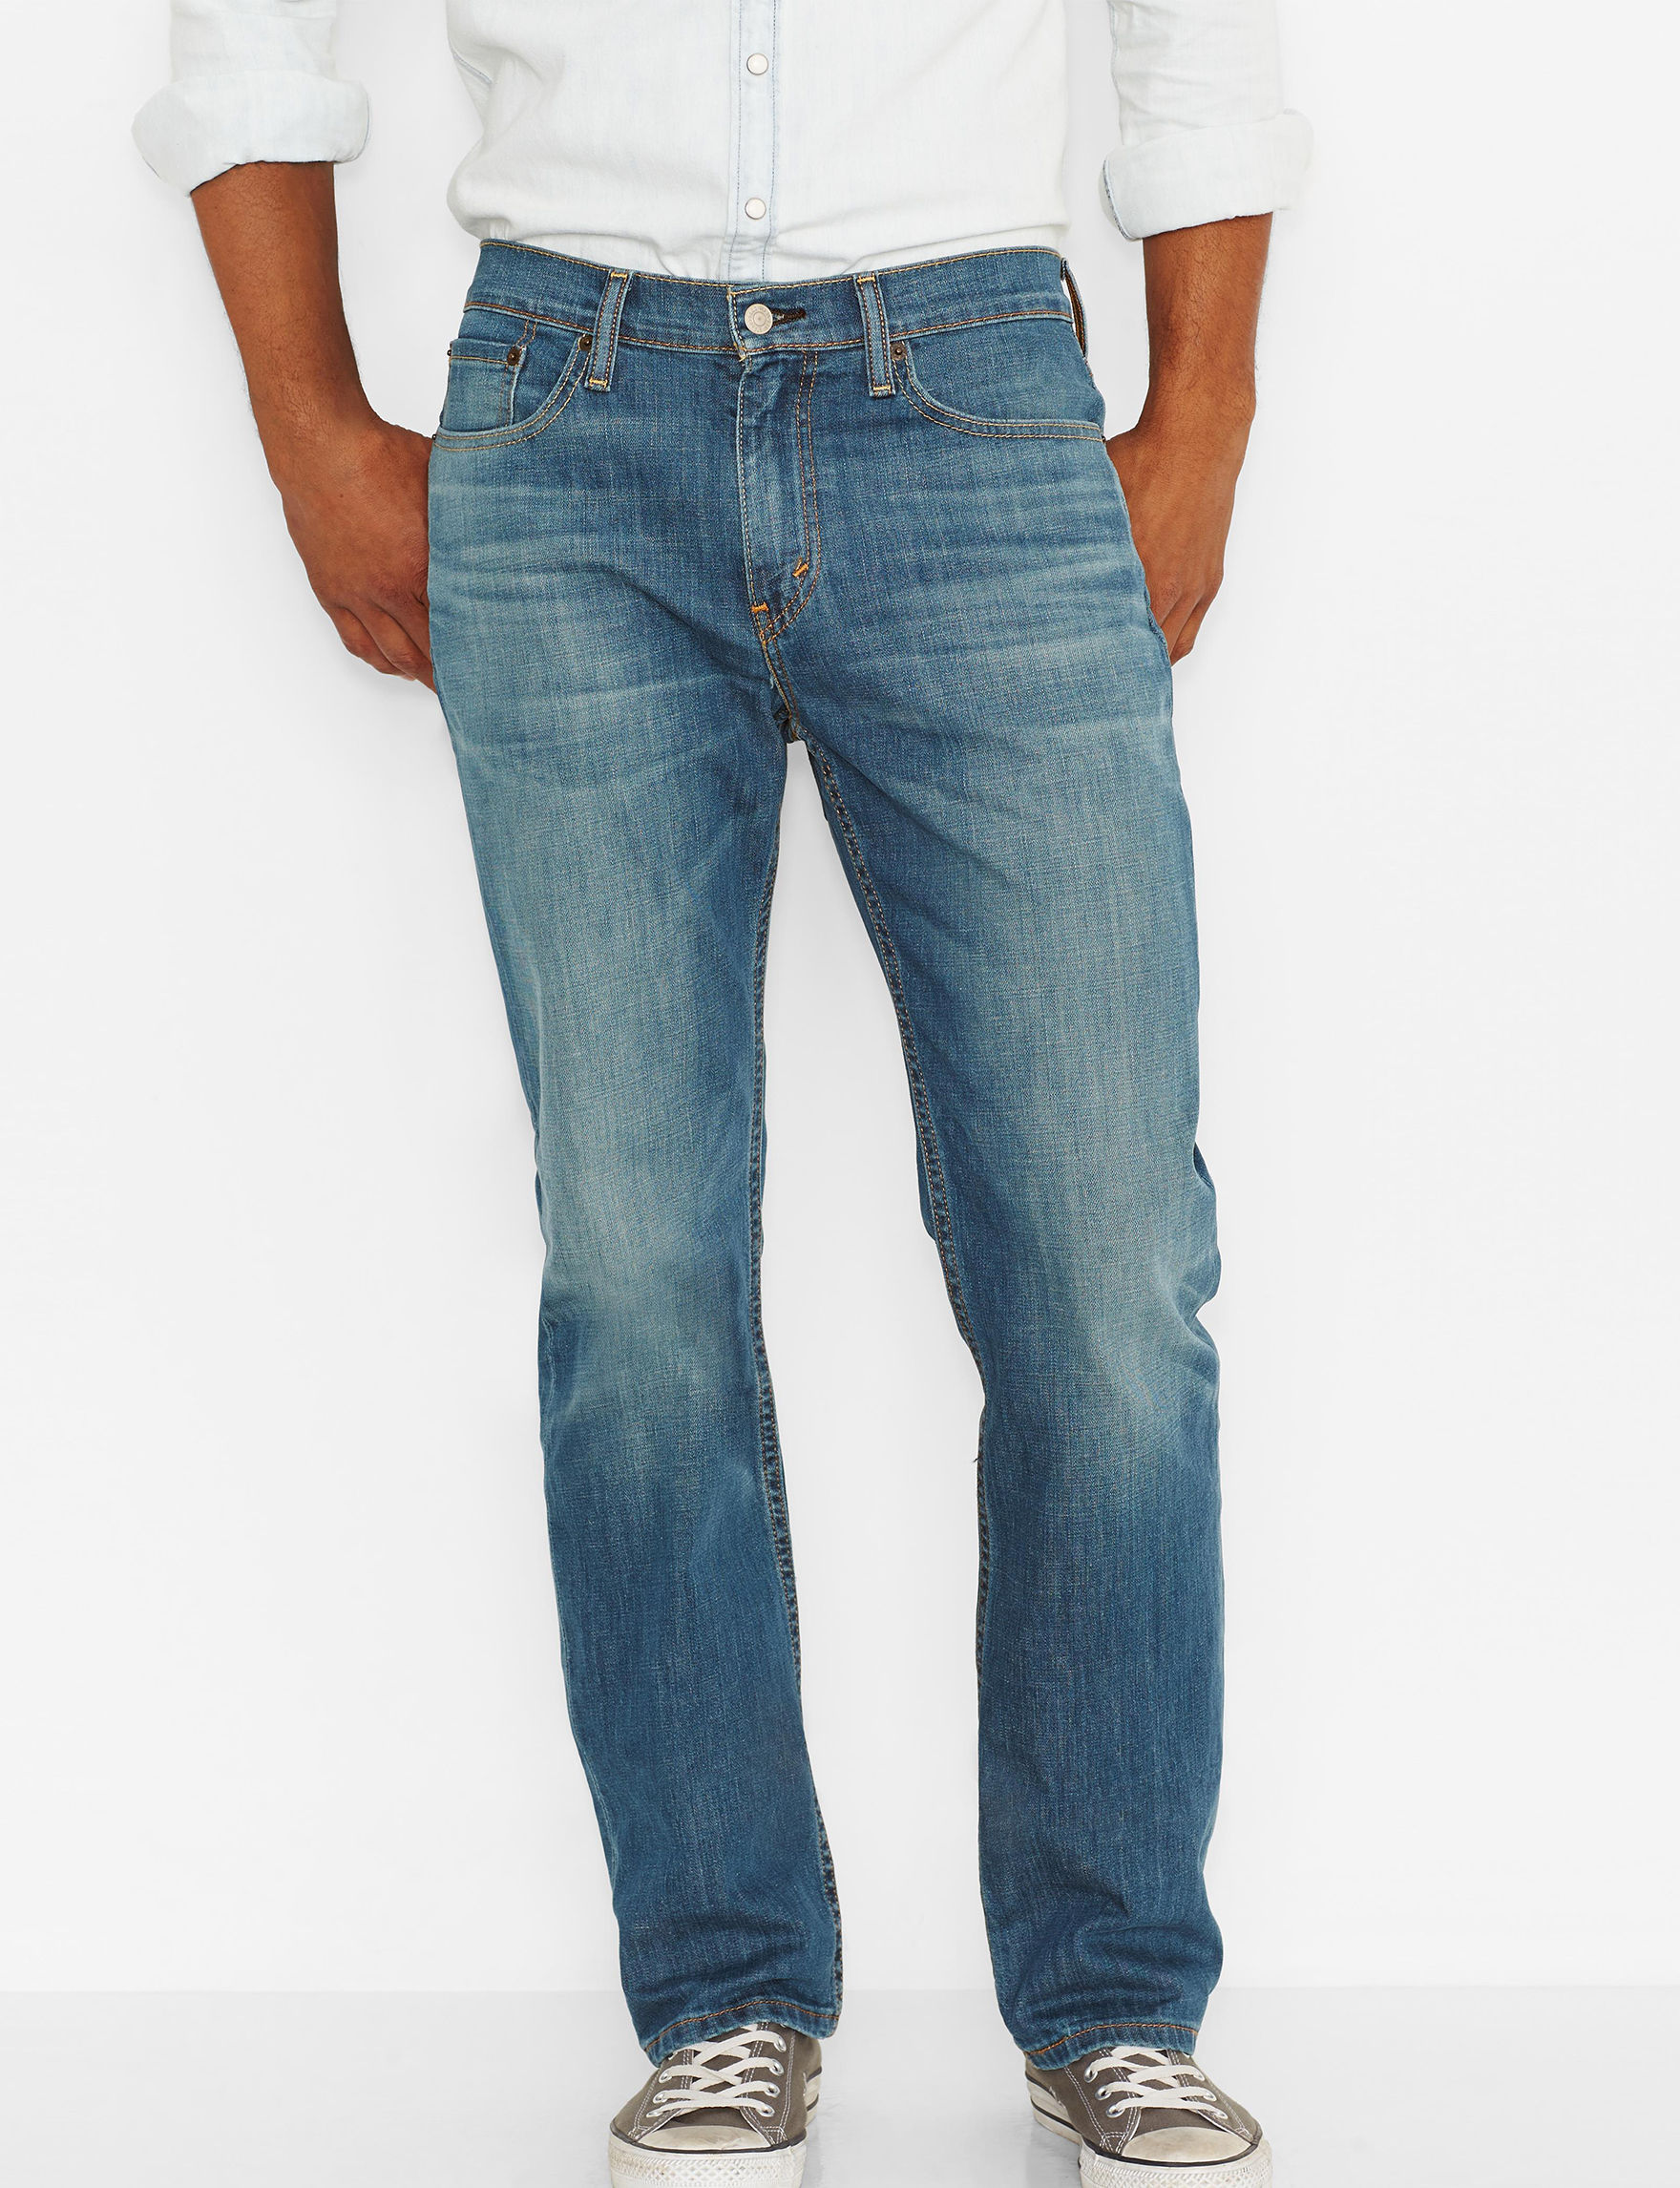 Levi's Veritable Straight